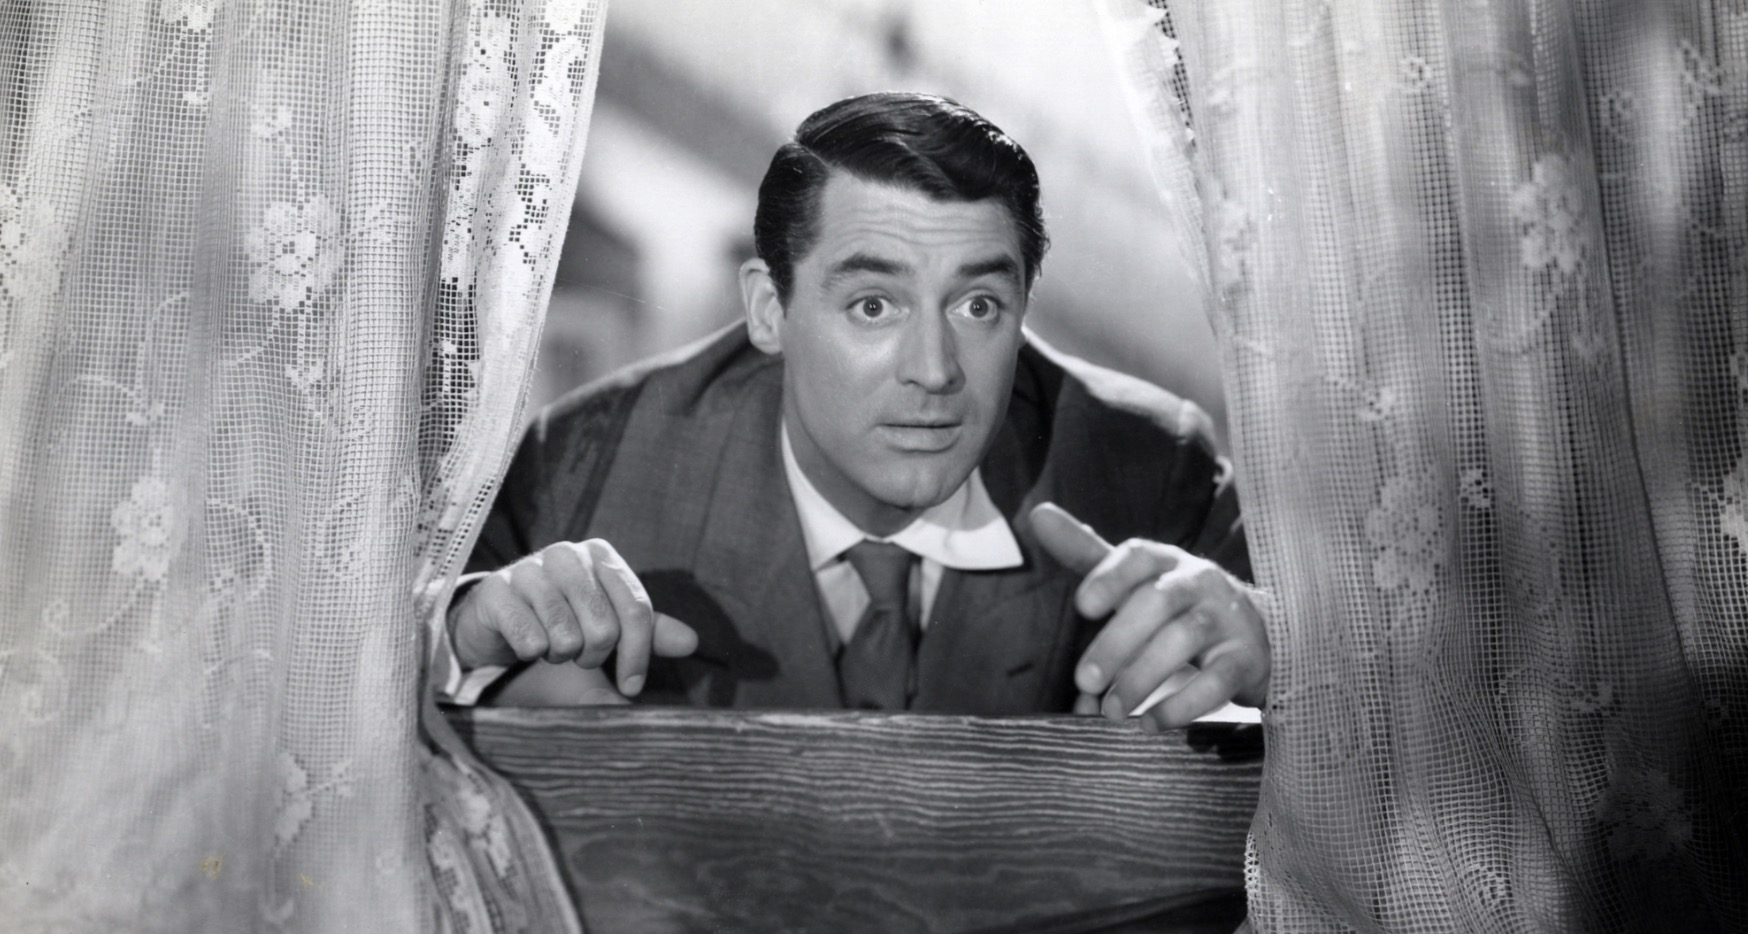 arsenic and old lace, basic movie quiz, movies